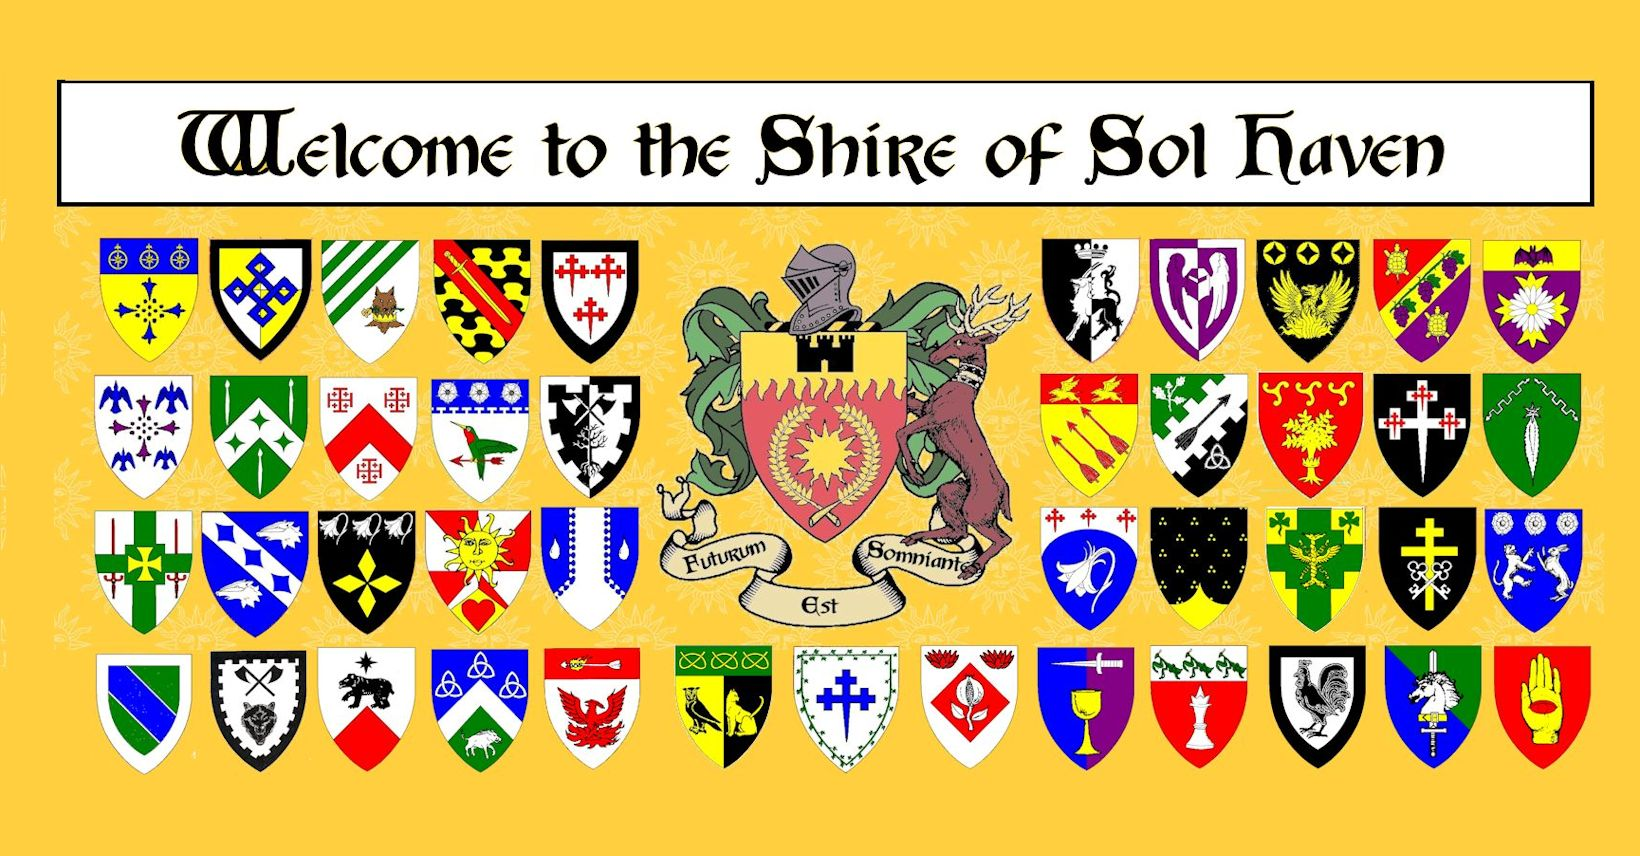 Shire of Sol Haven